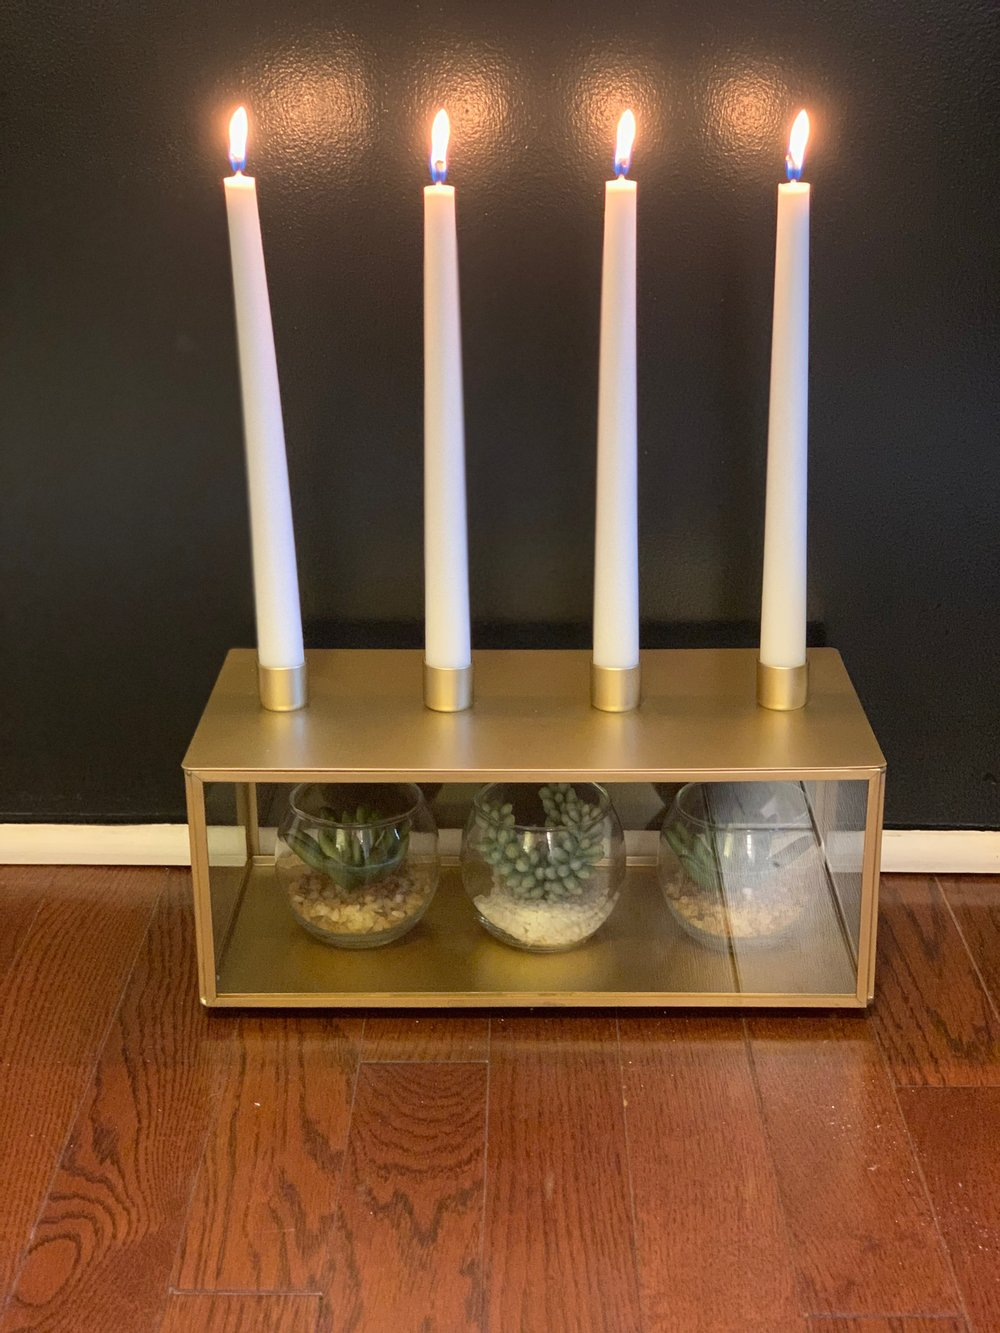 Hearth and Home antique brass candelabra by joanna gaines